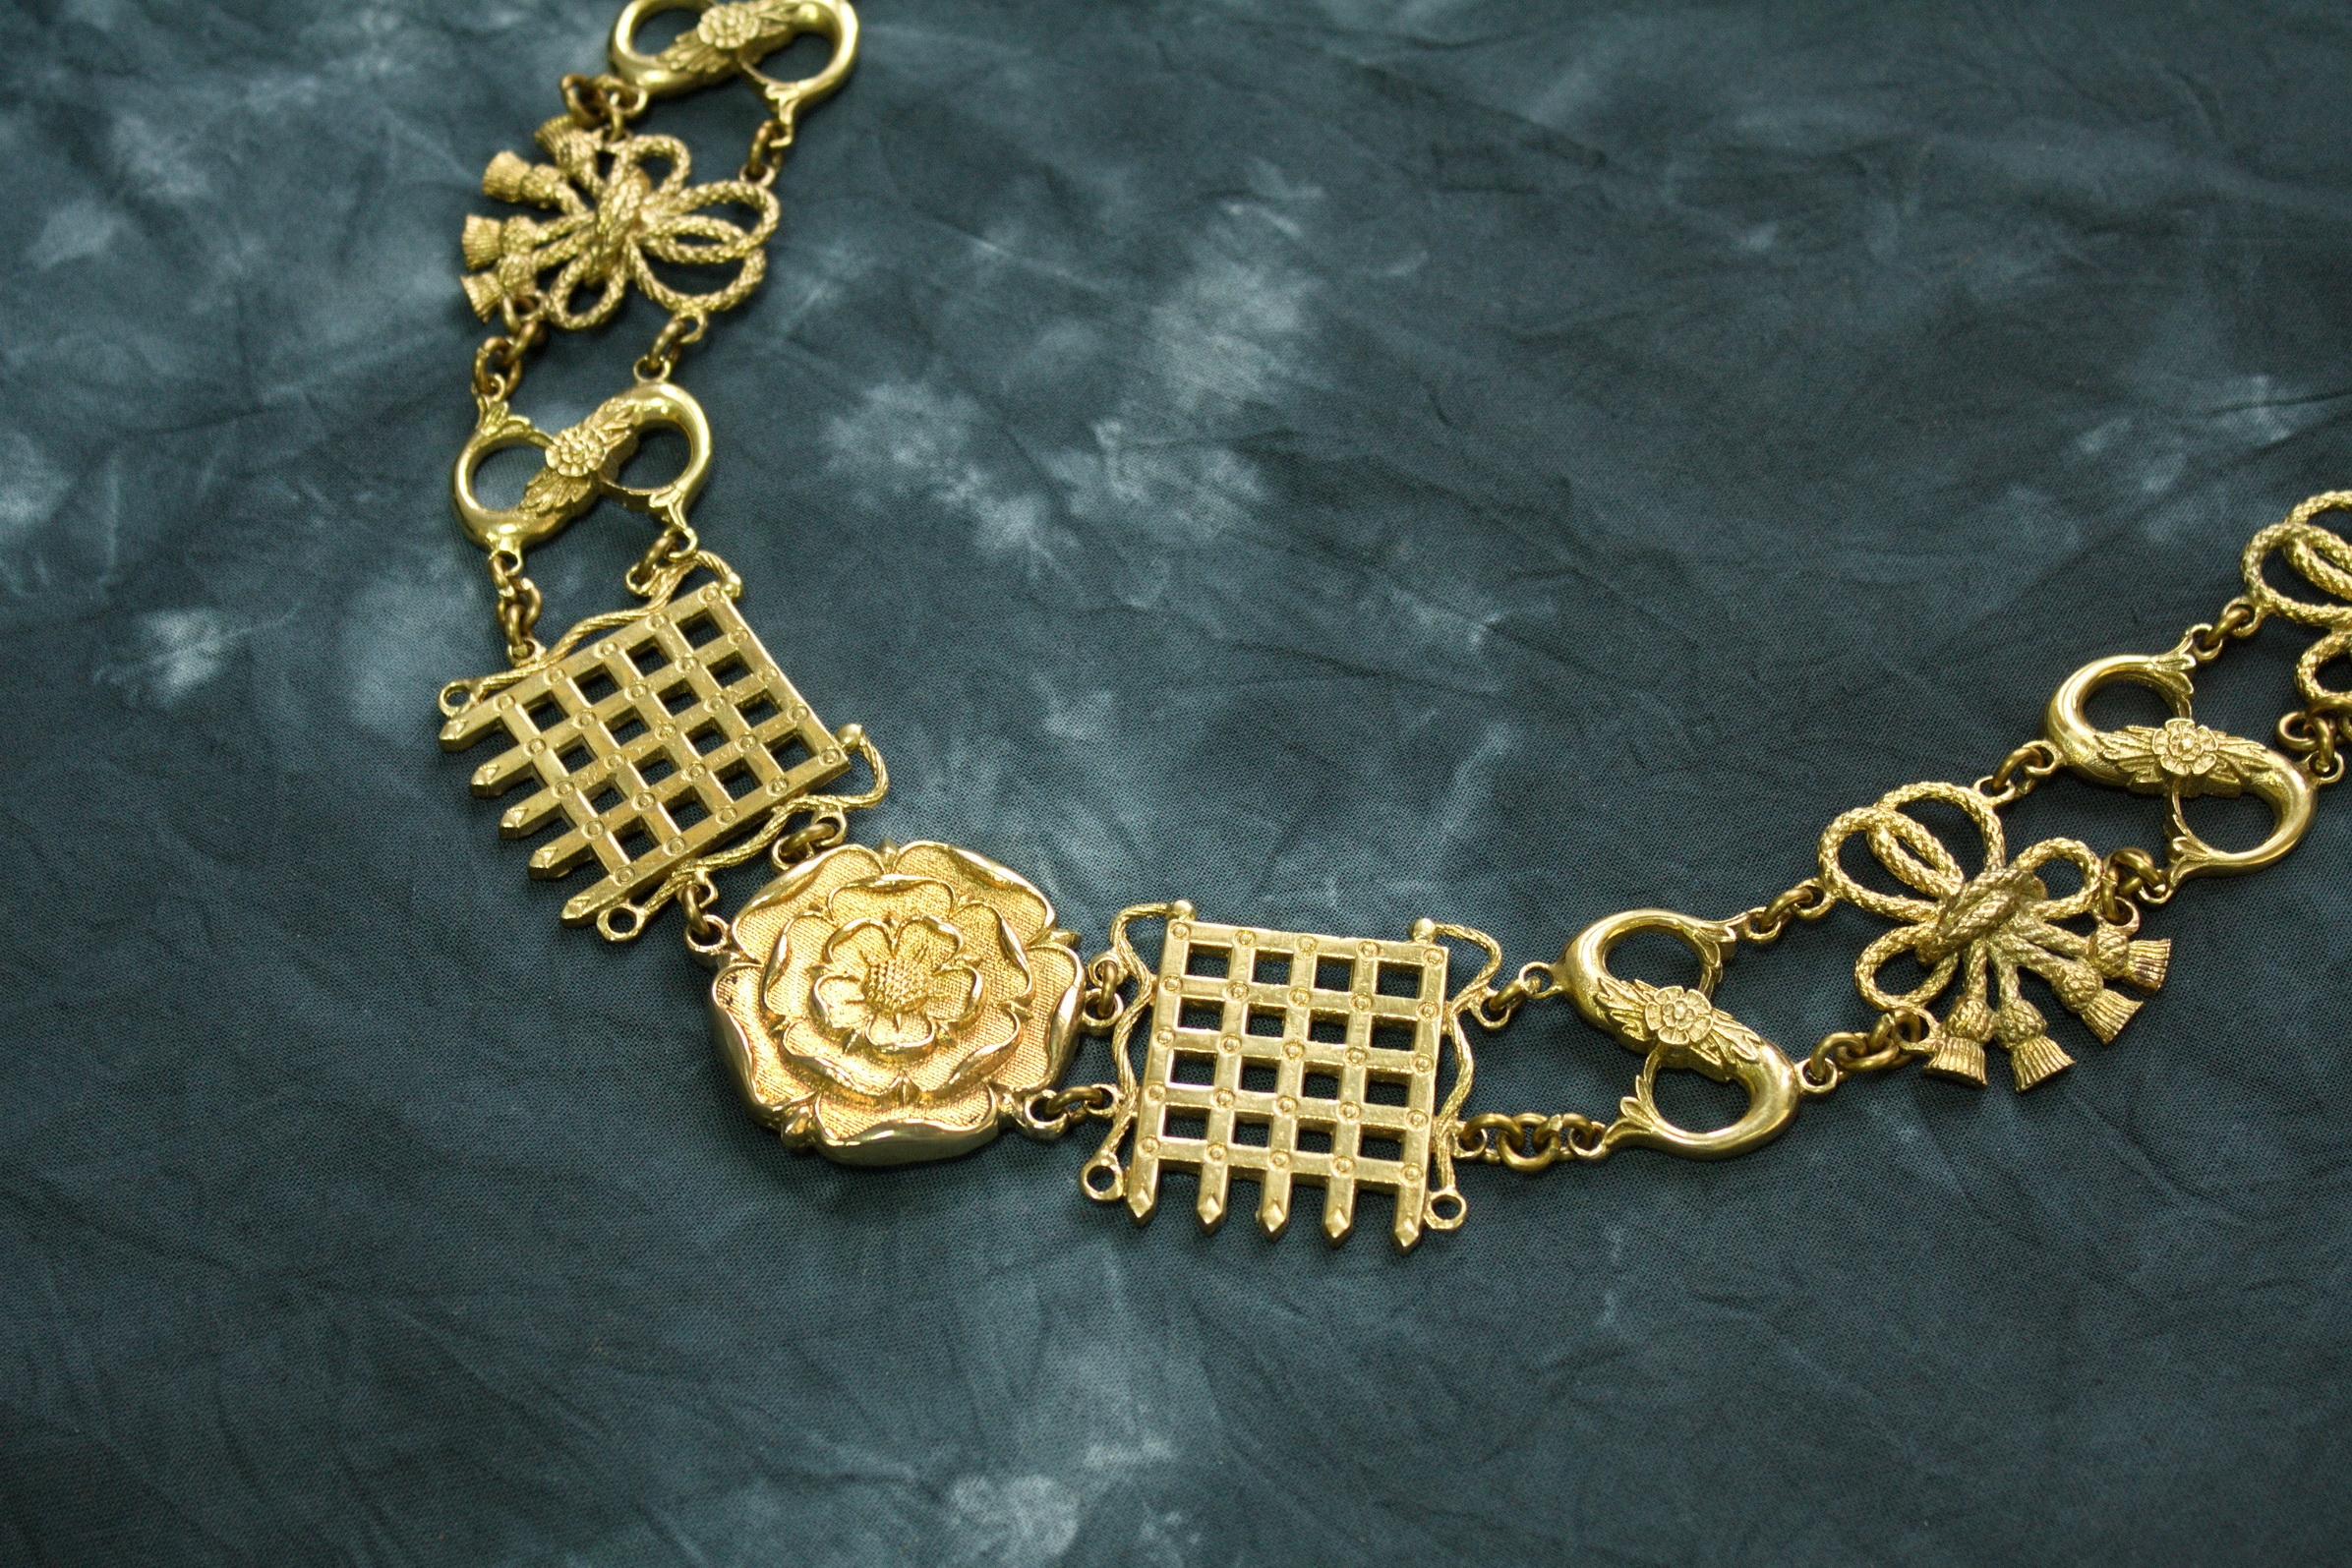 Chain of Office Bronze Customized Mens Tudor Chain of Office Neck Wear Livery Collar Renaissance Costume Jewelry Arthur Chain of Office